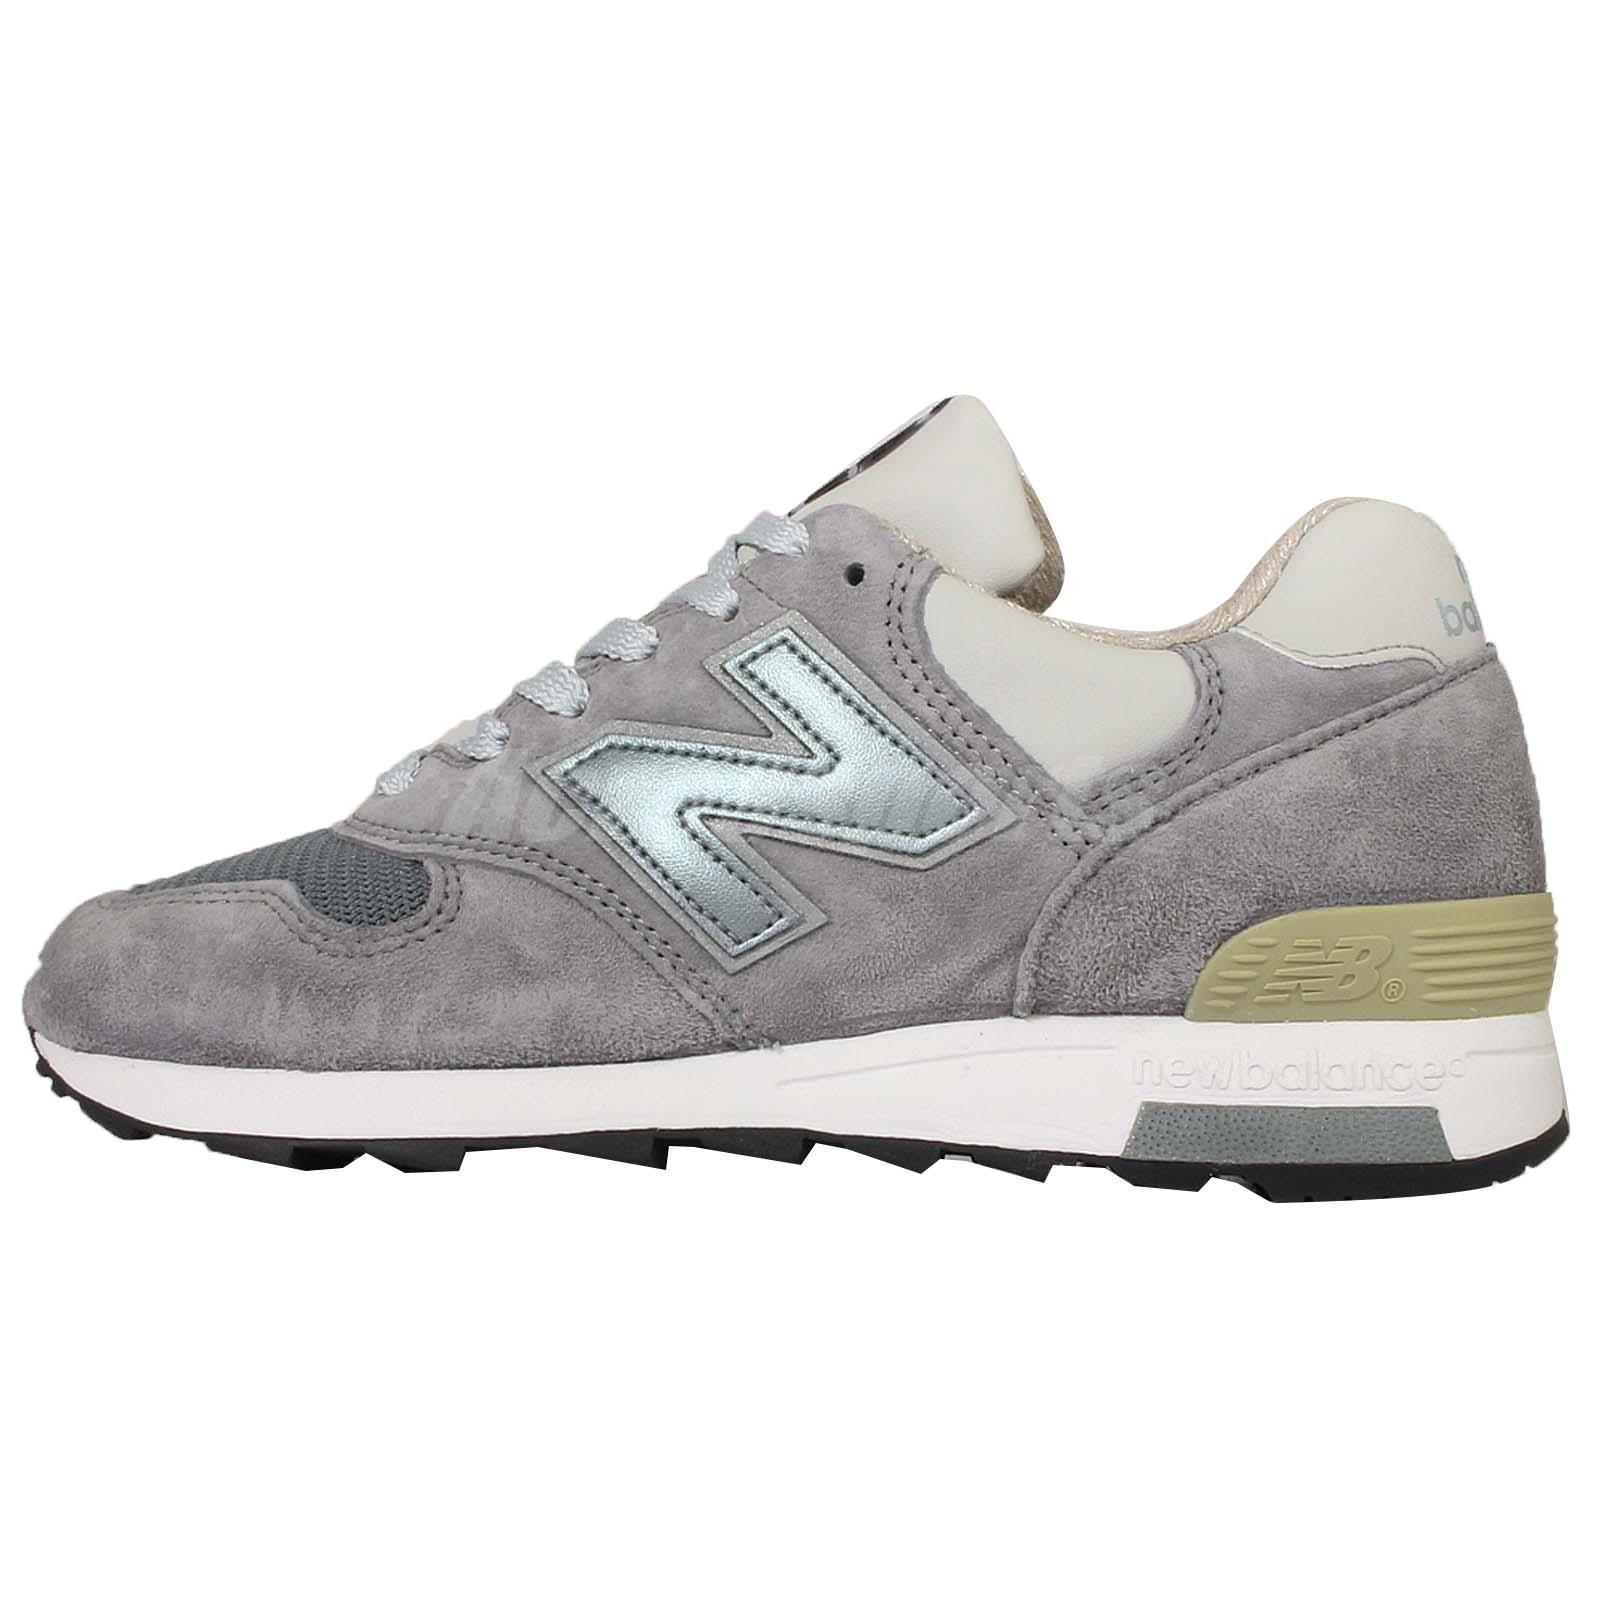 New Balance M1400SB D Grey Silver Mens Retro Running Shoes made In USA  M1400SBD